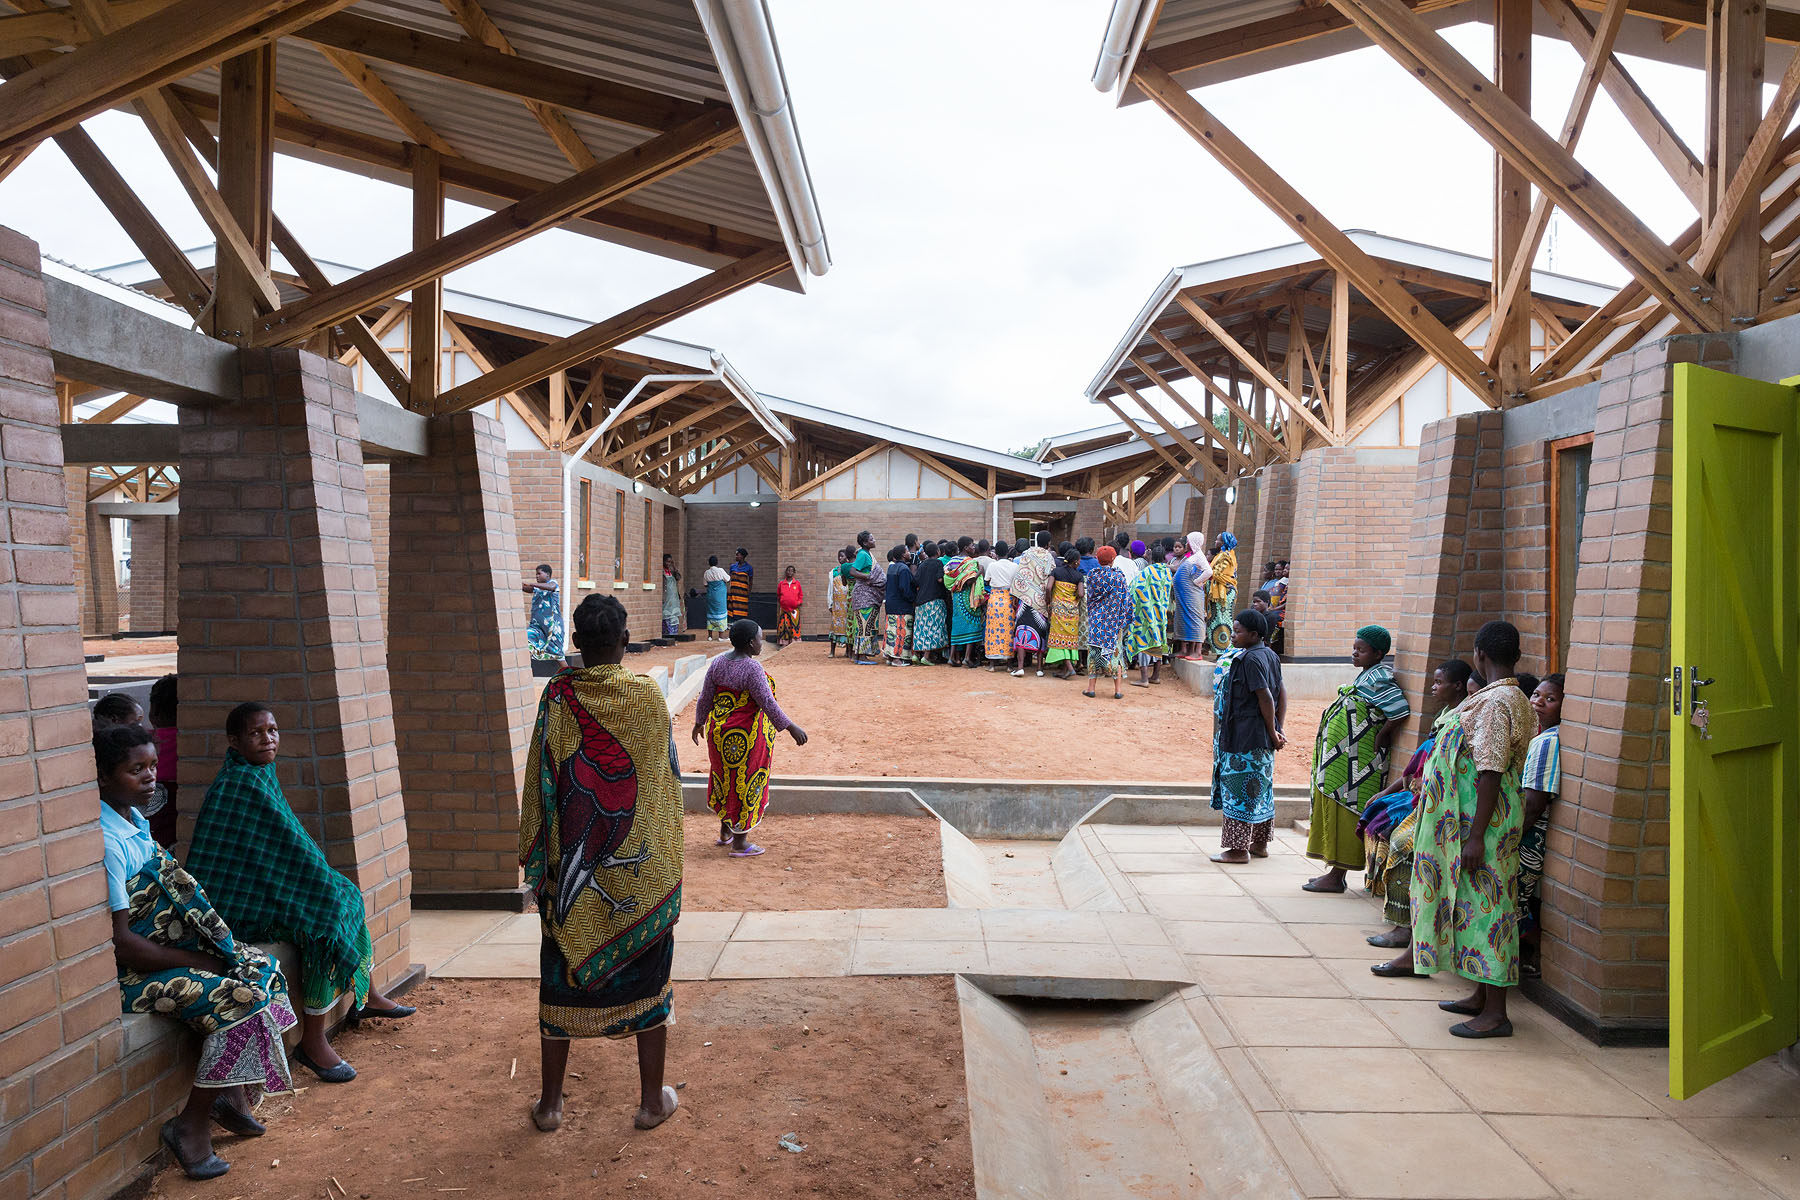 Empathy in Architecture: Maternity Waiting Village by MASS Design